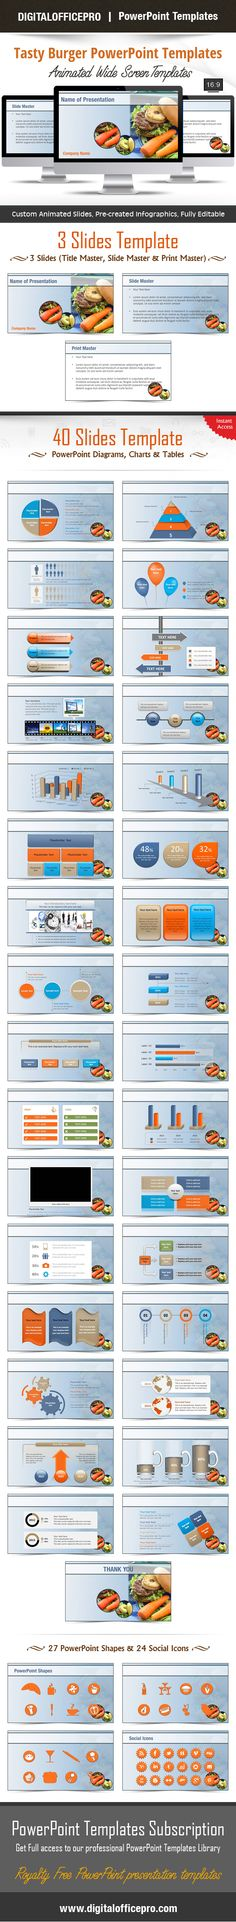 Impress and Engage your audience with Tasty Burger PowerPoint Template and Tasty Burger PowerPoint Backgrounds from DigitalOfficePro. Each template comes with a set of PowerPoint Diagrams, Charts & Shapes and are available for instant download.